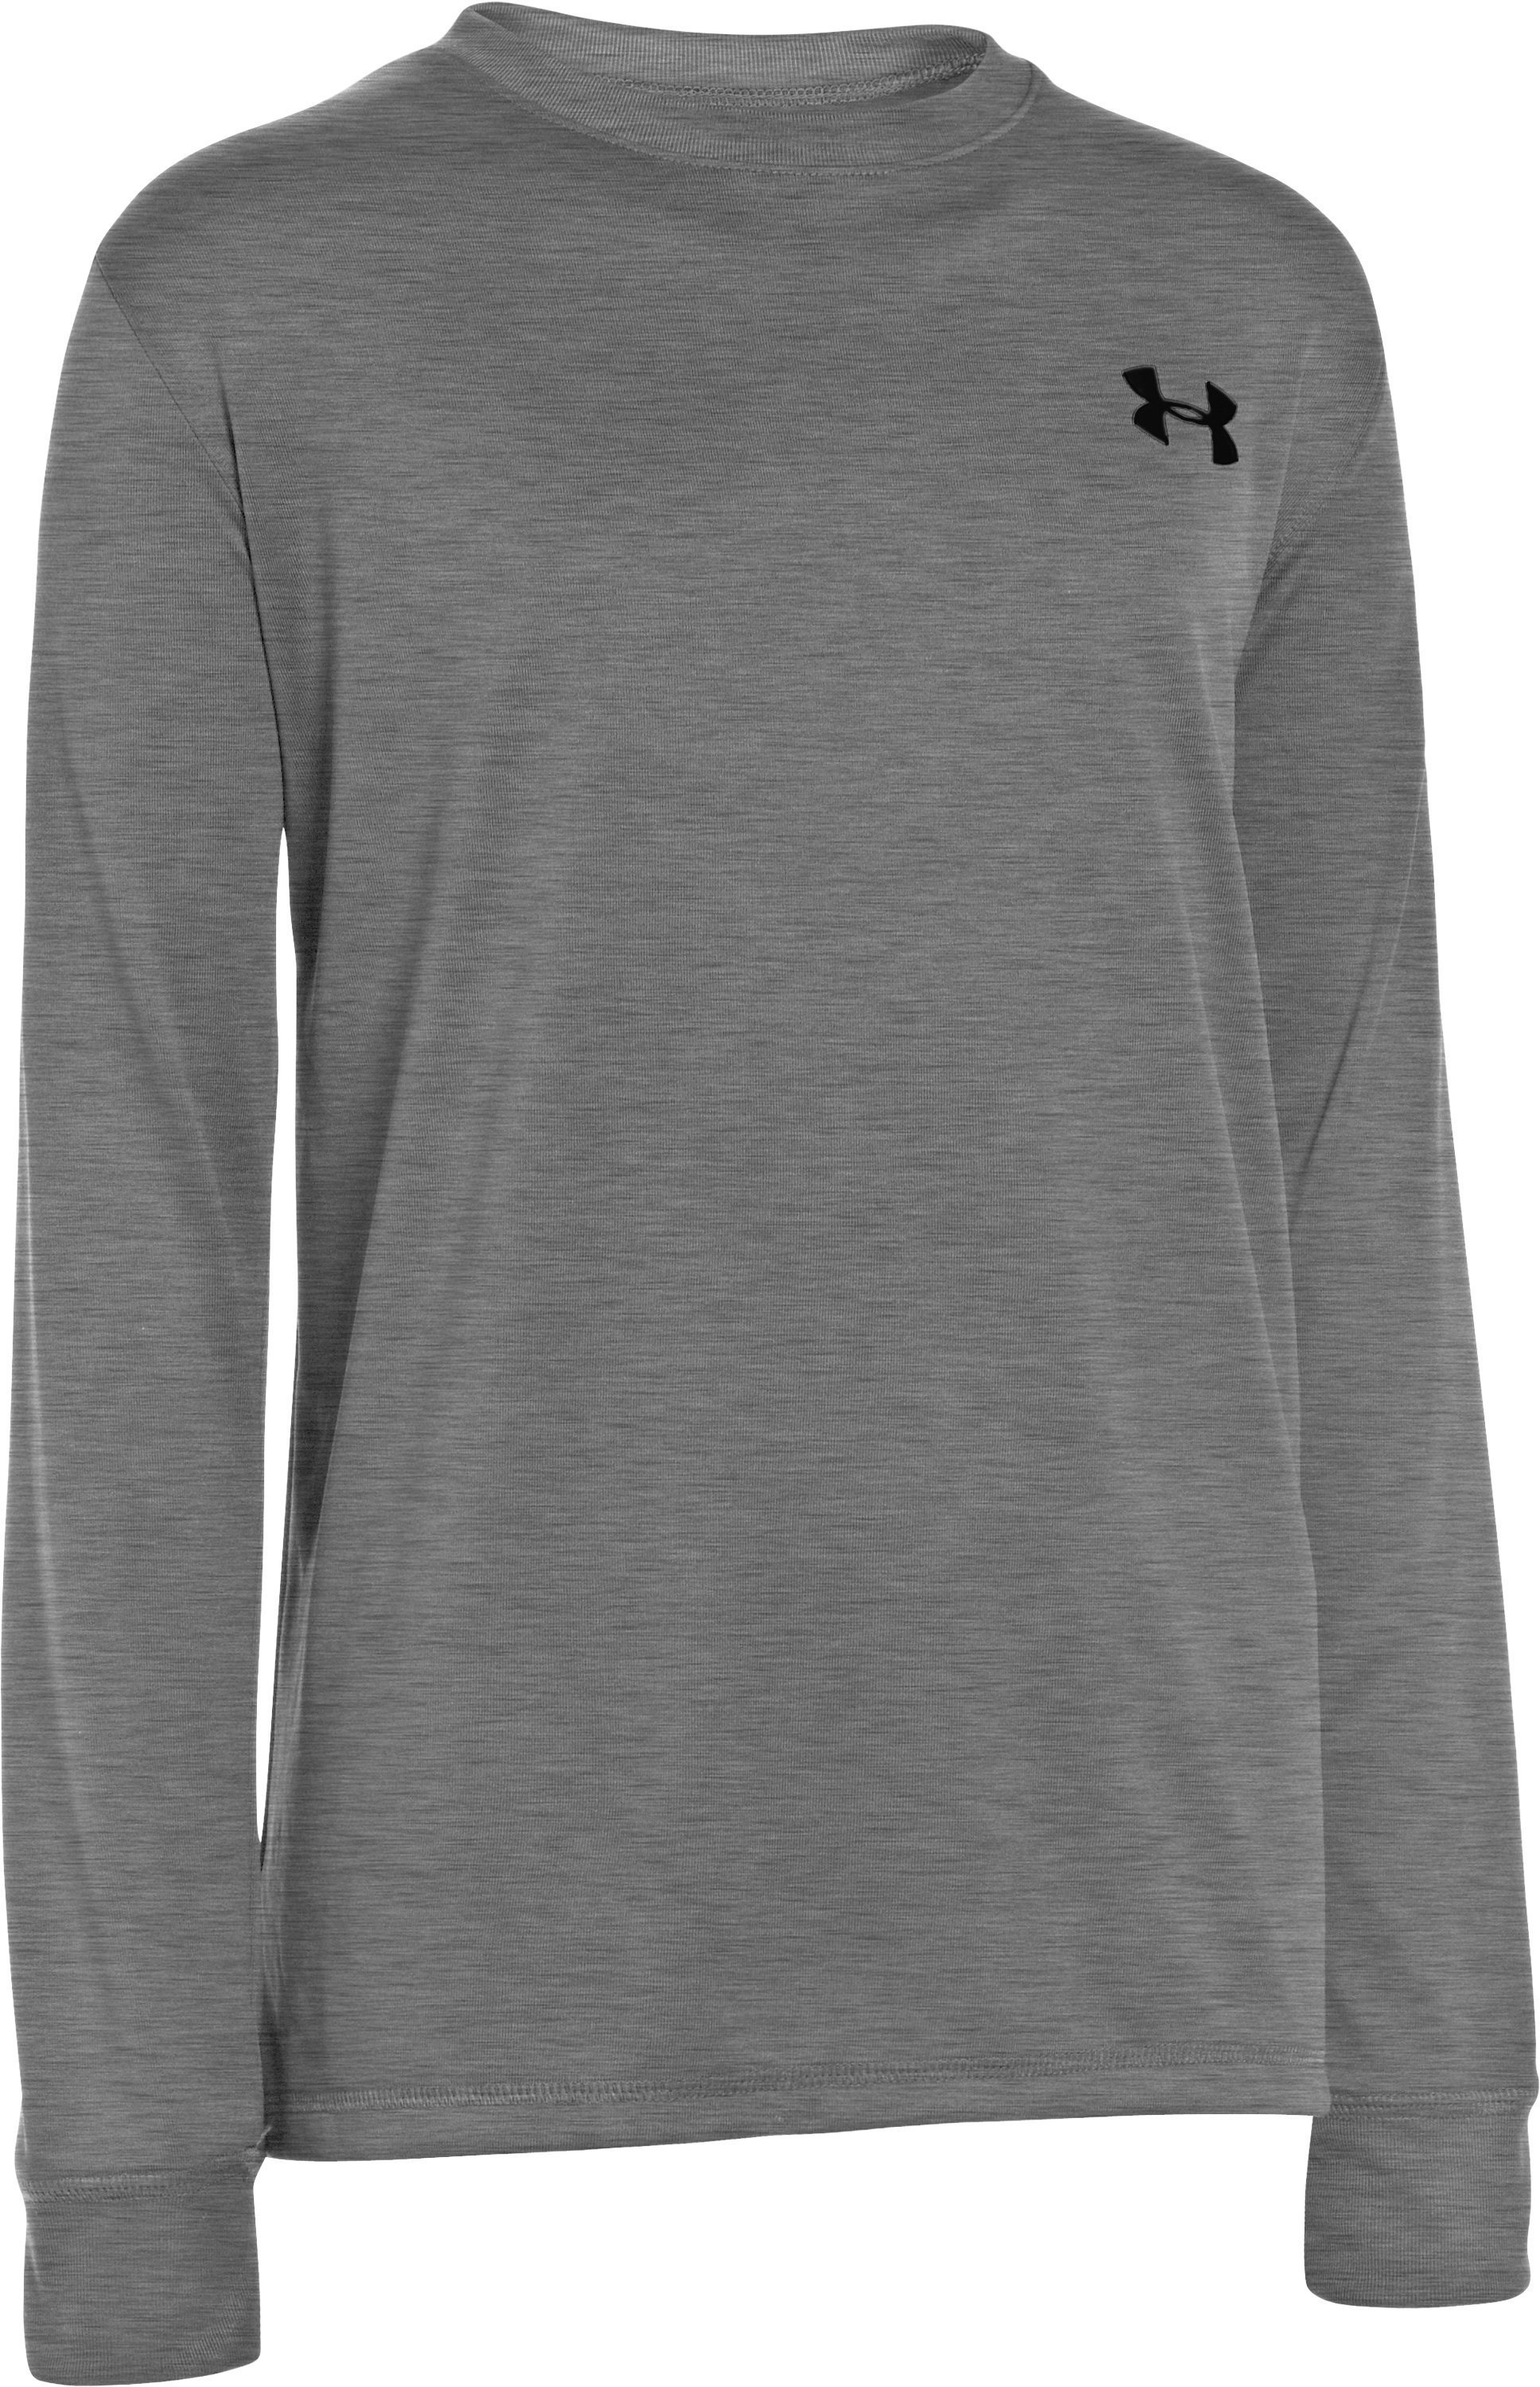 Boys' UA Cray Long Sleeve T-Shirt, True Gray Heather